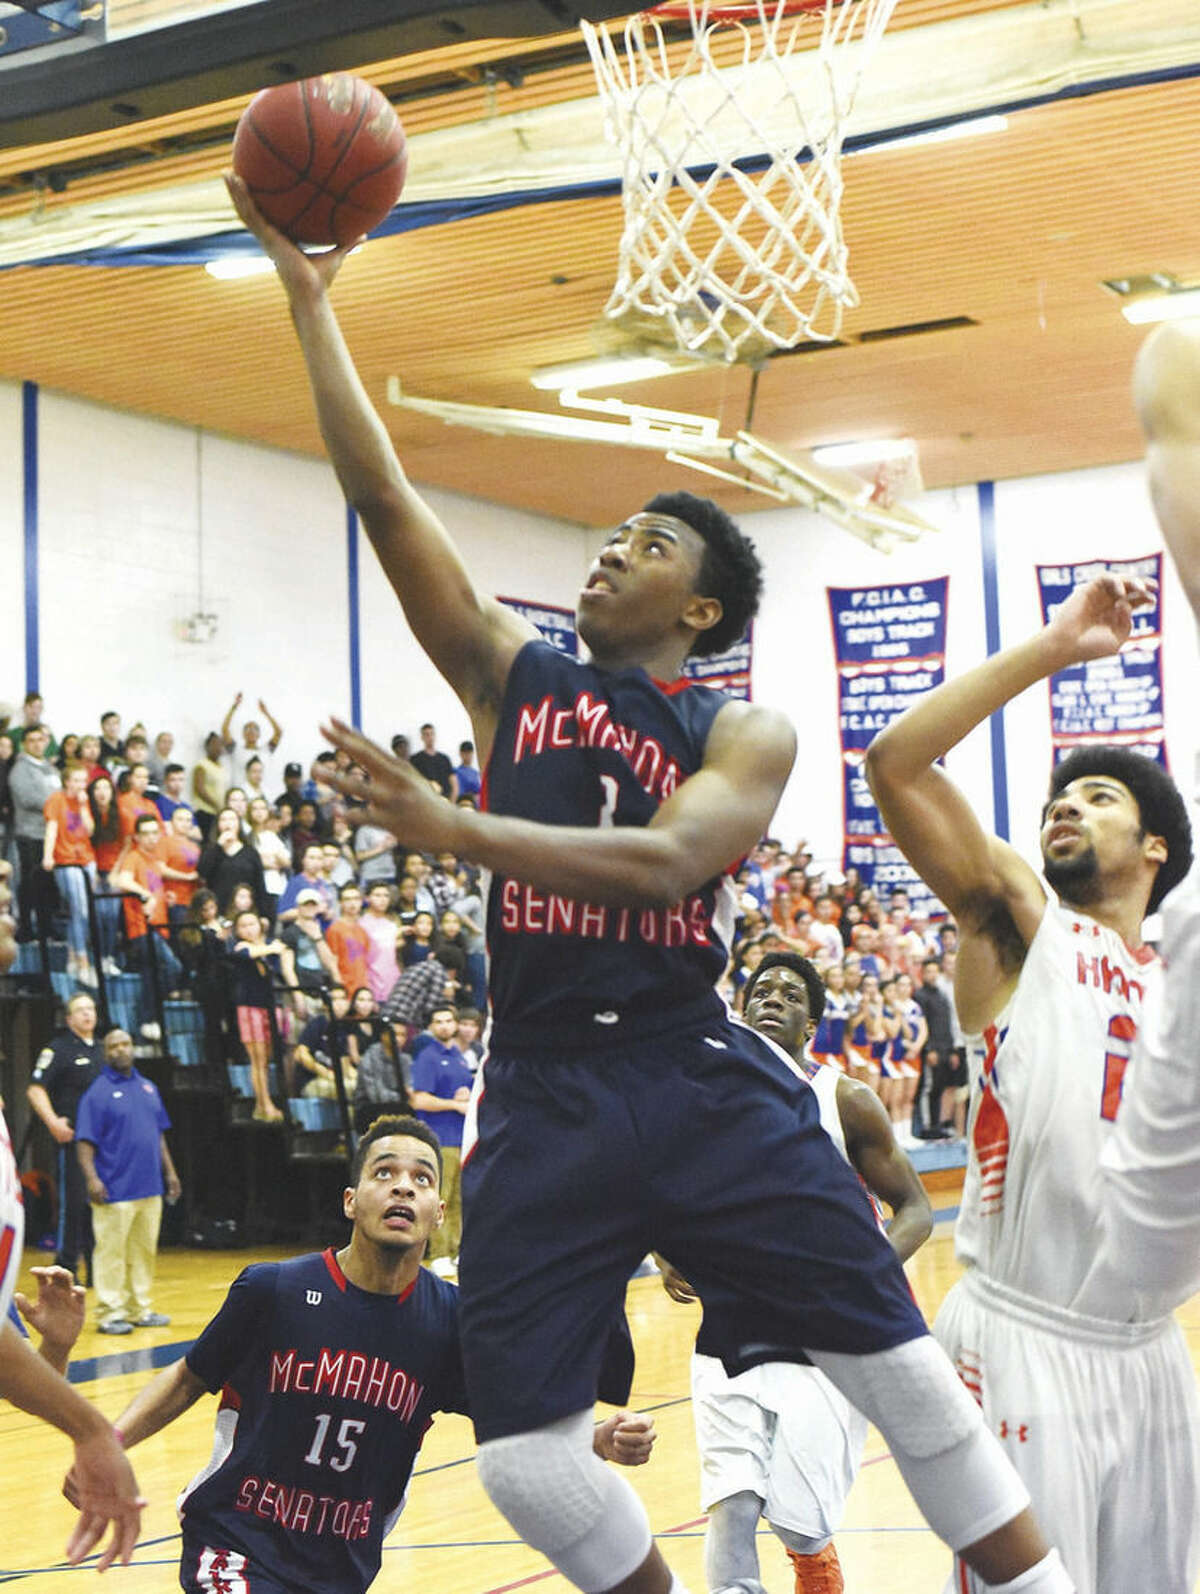 Hour photo/John Nash McMahon's David Civil puts up a shot for two of his 16 points during the Senators' 53-44 loss to Danbury in a CIAC Class LL second round game.